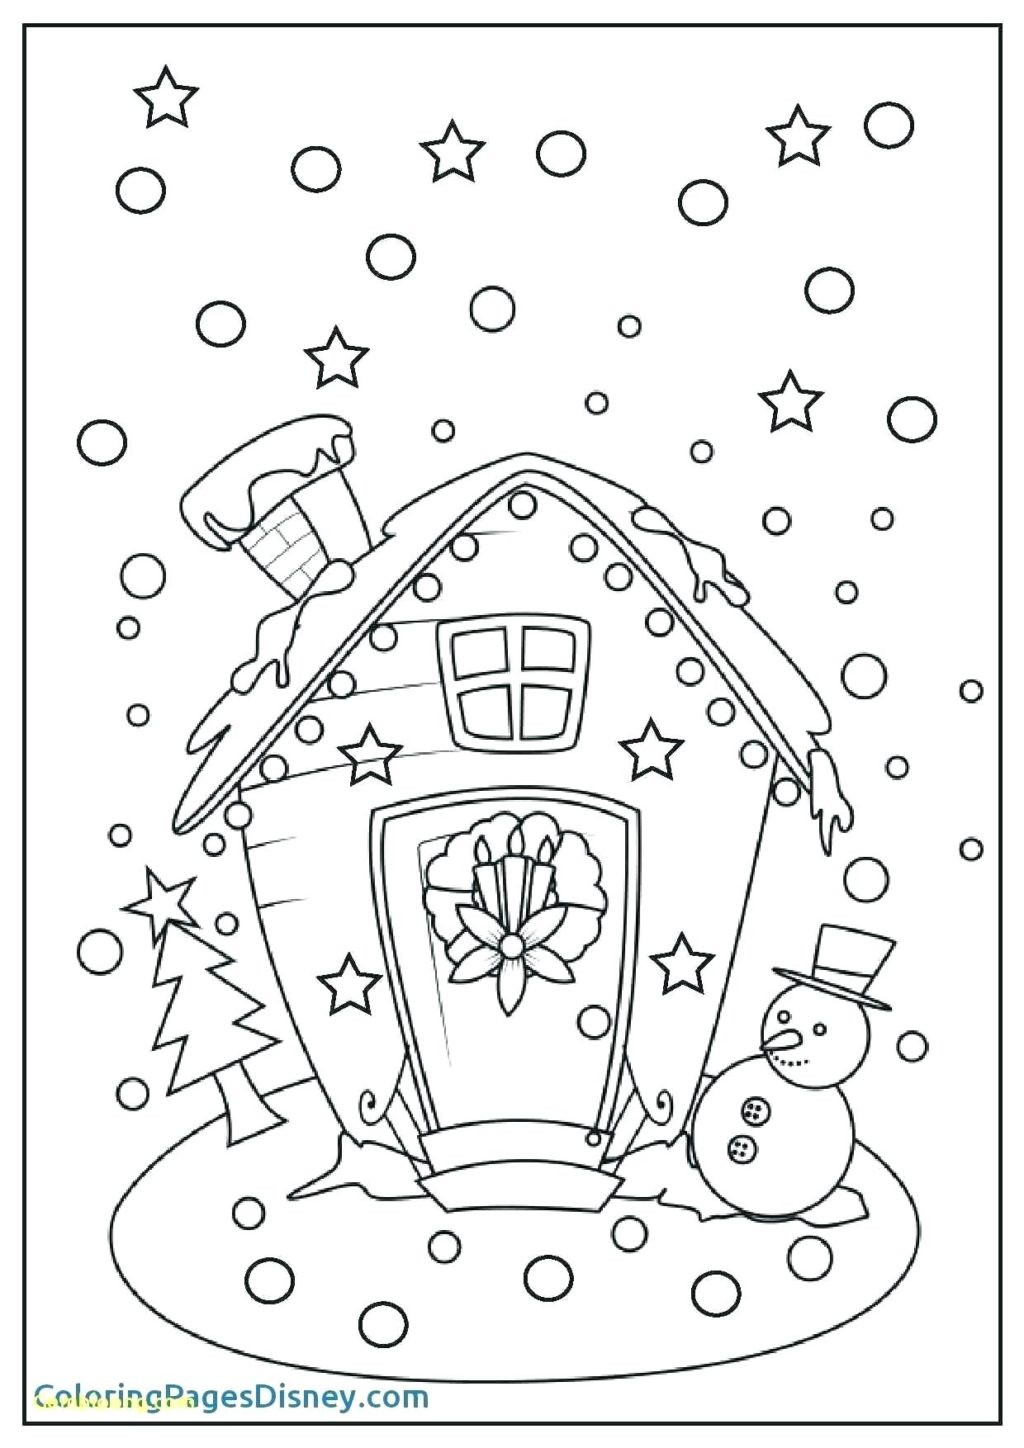 Volume Worksheet 4th Grade Worksheet Printable Math Coloring Pages 4th Grade